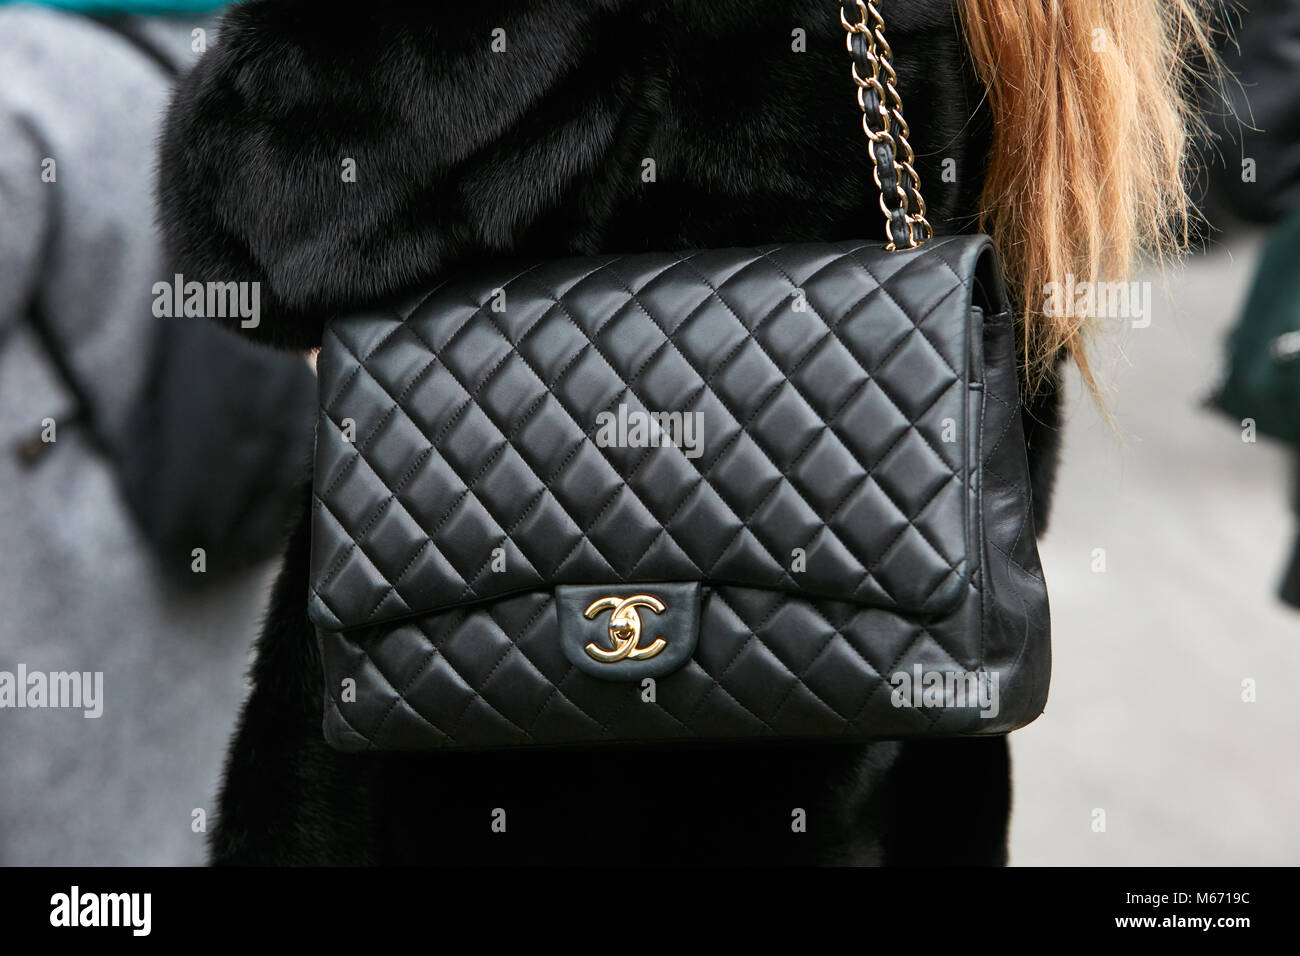 Borse Con Catena Chanel.Milan February 25 Woman With Black Chanel Leather Bag With